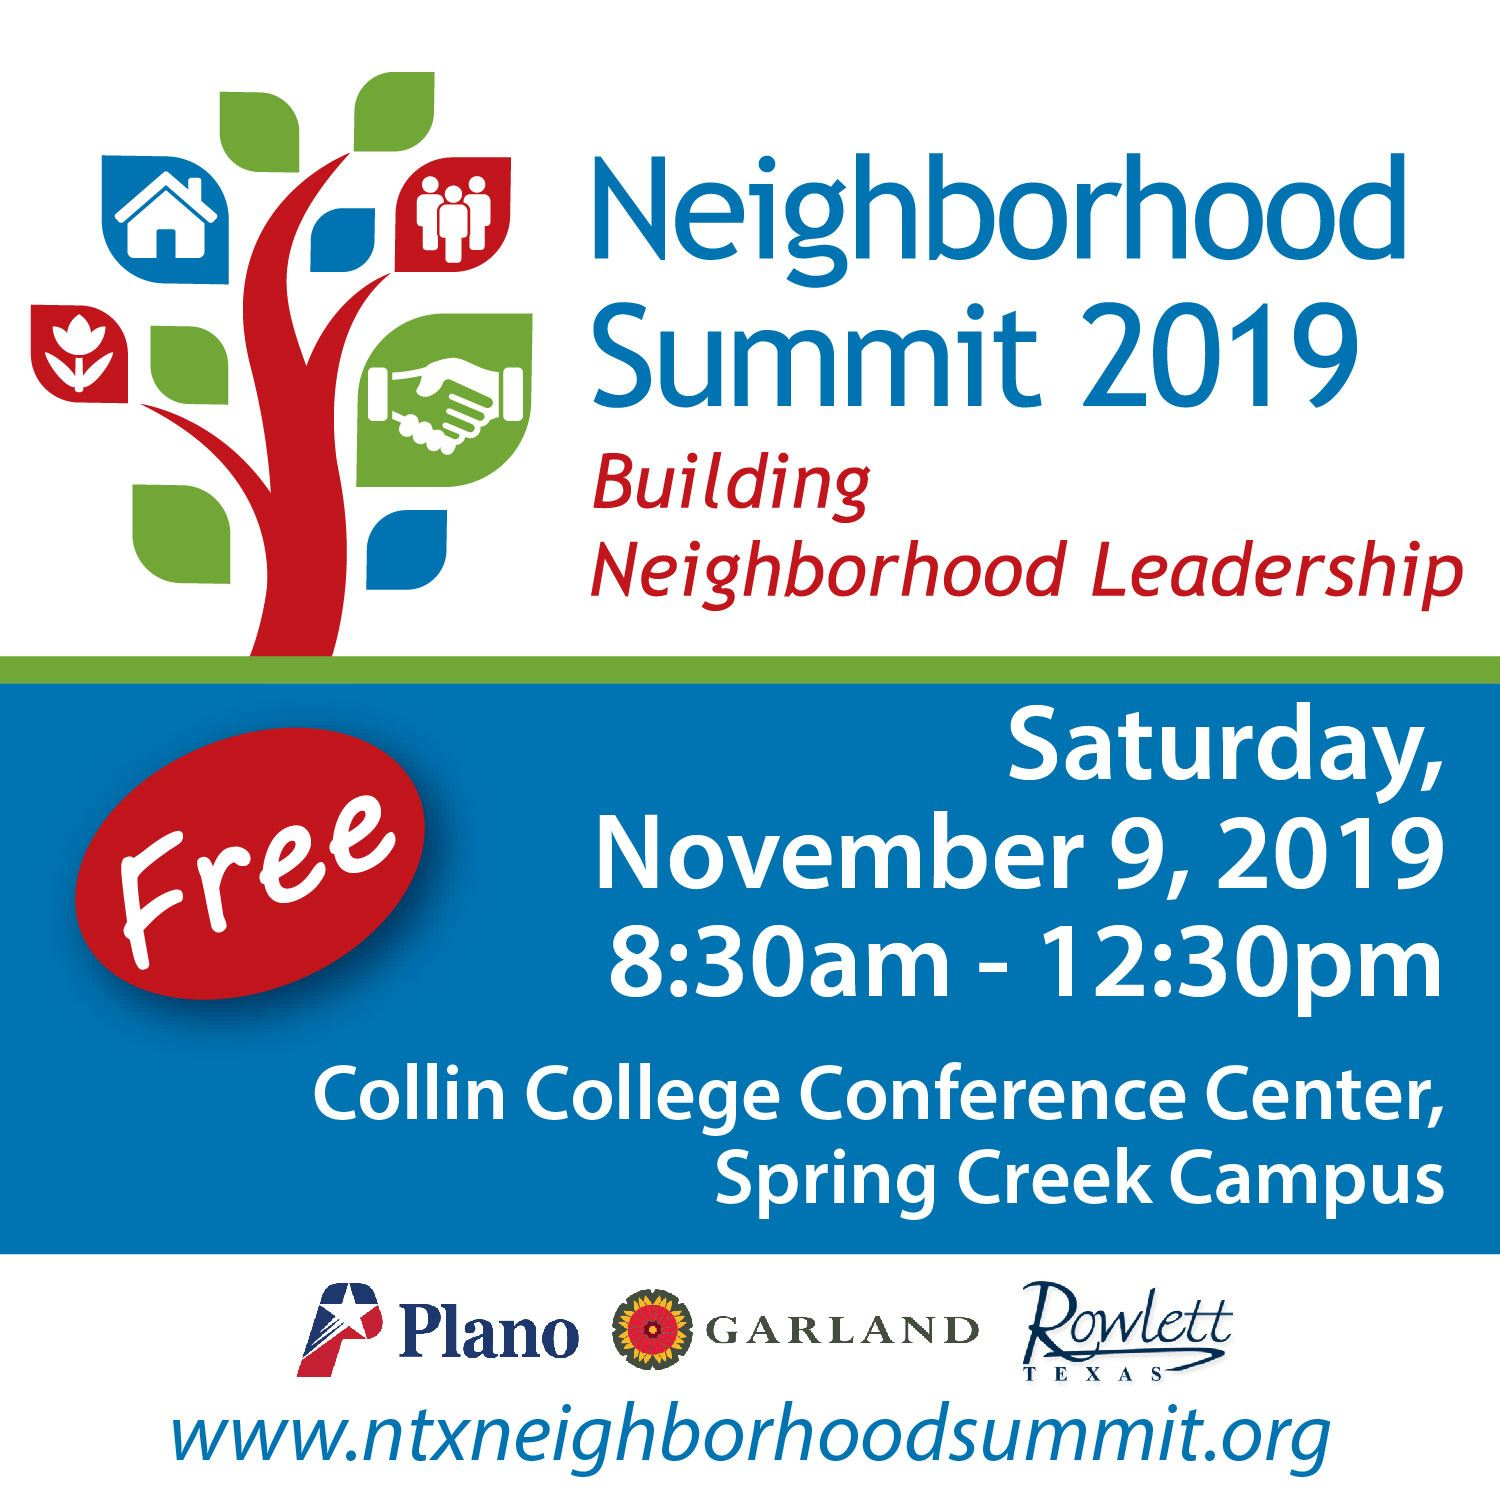 2019 Neighborhood Summit